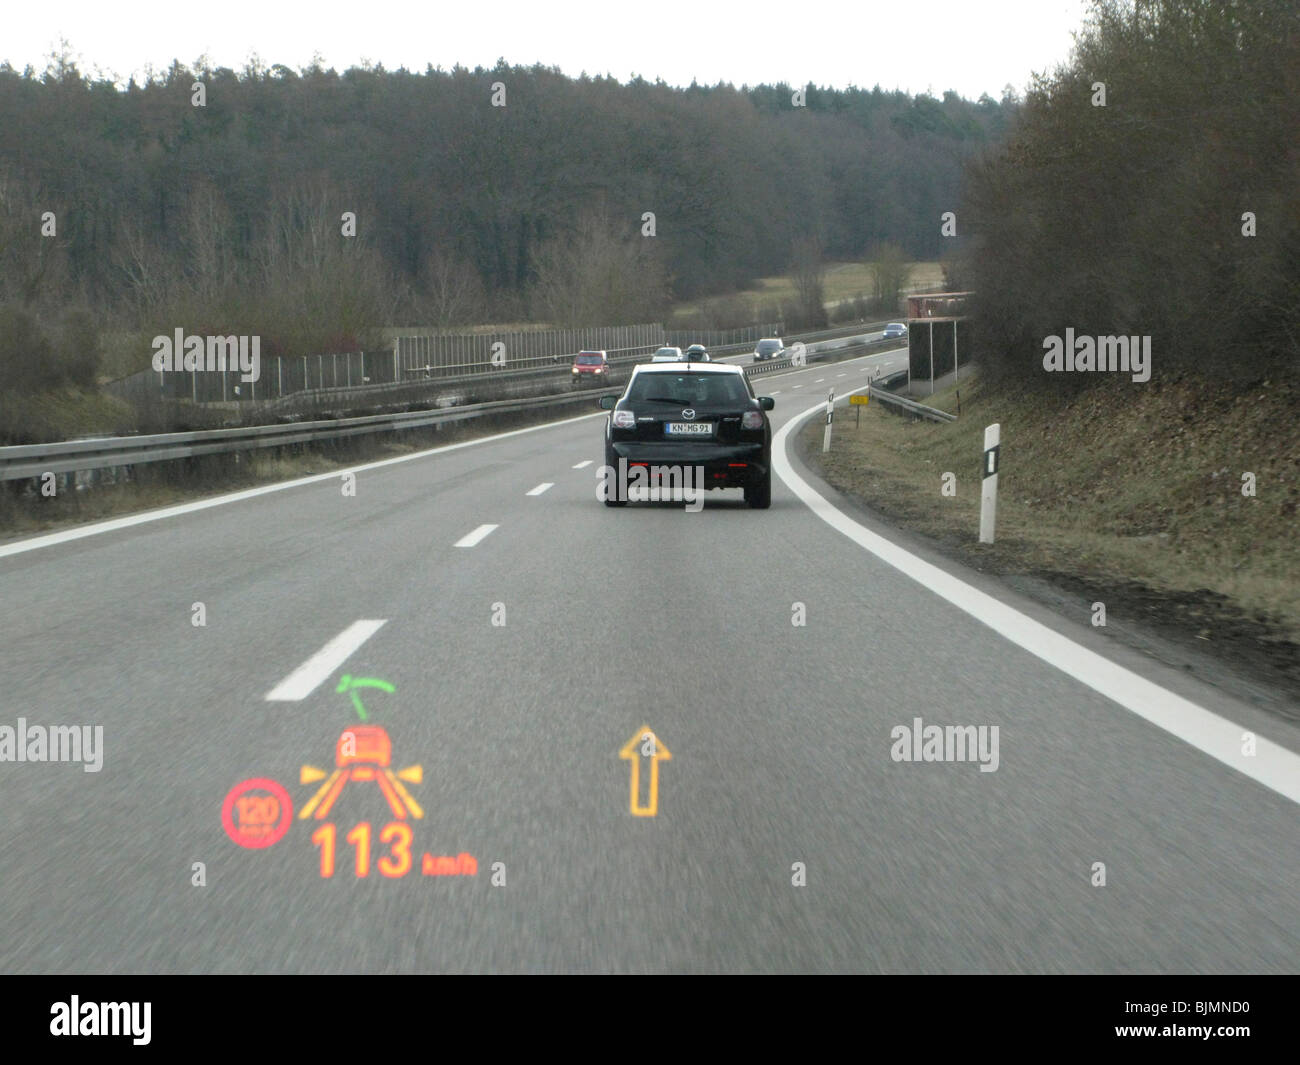 BMW 730d Sedan, F01 type code, with head-up display, HUD, navigation, driver assistance systems, such as distance - Stock Image